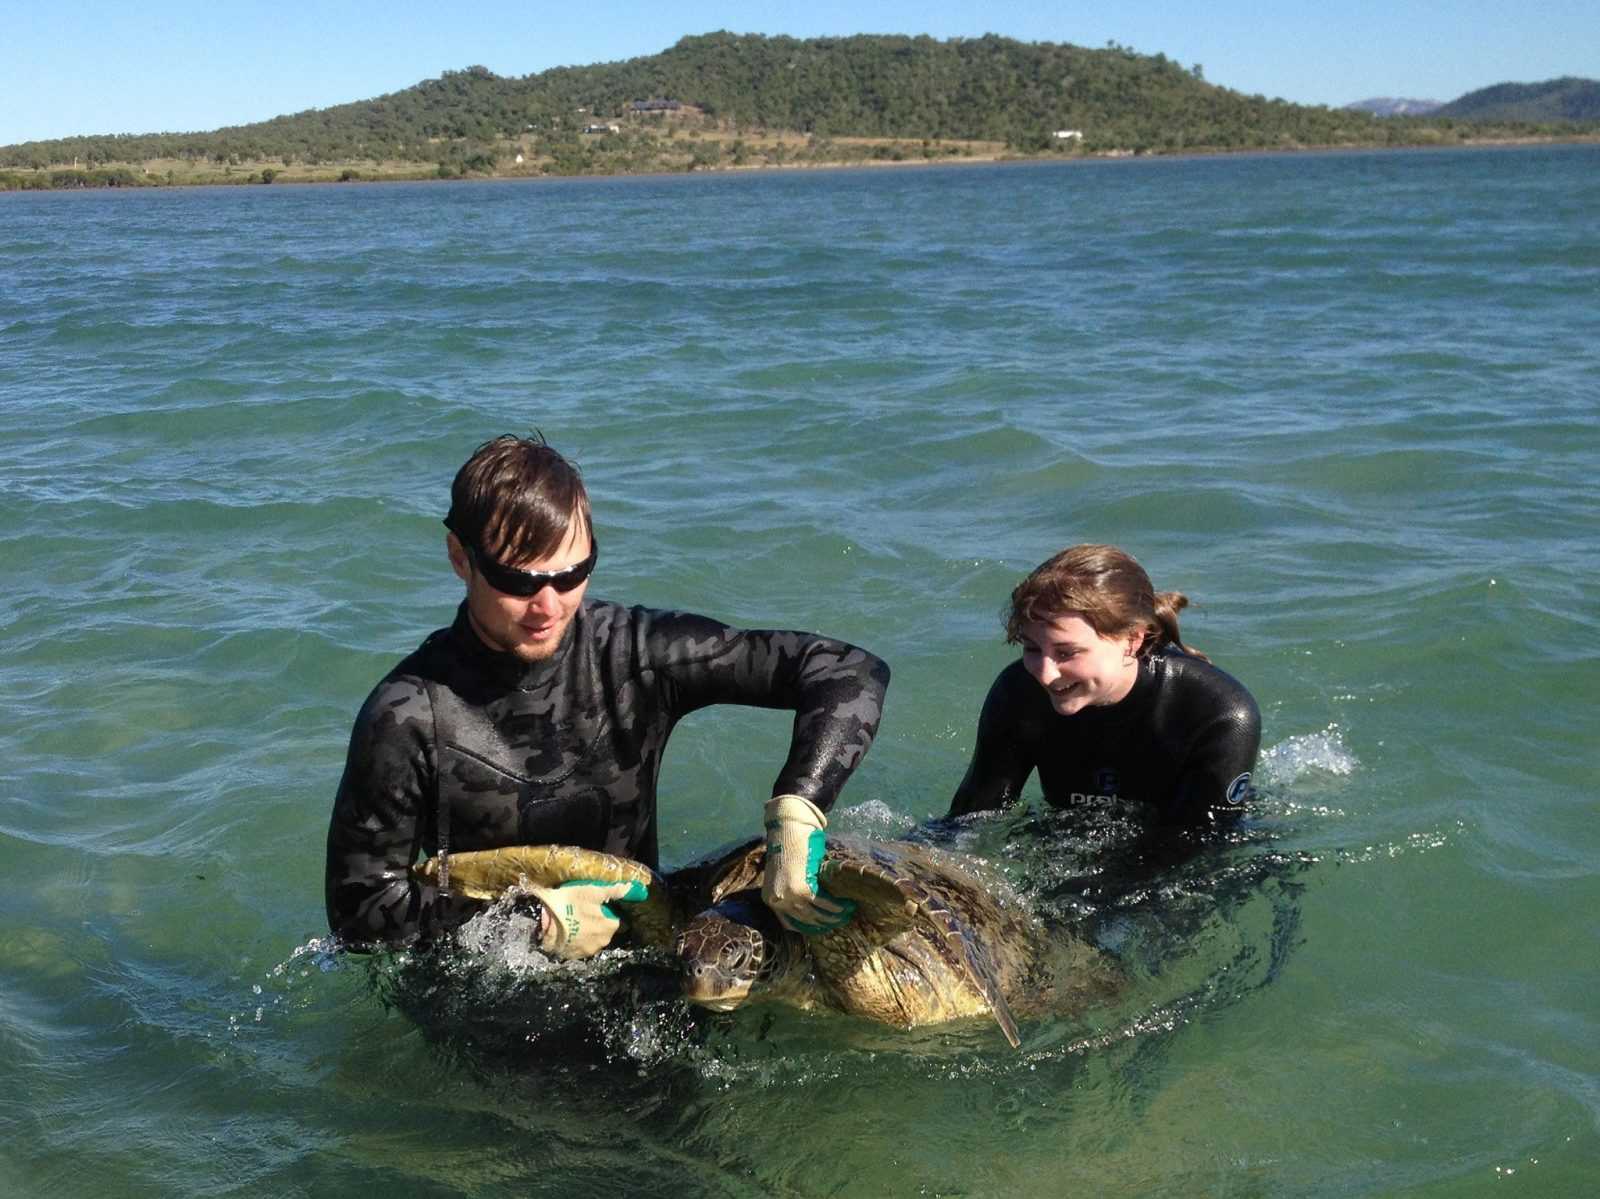 Capture of an adult Green turtle